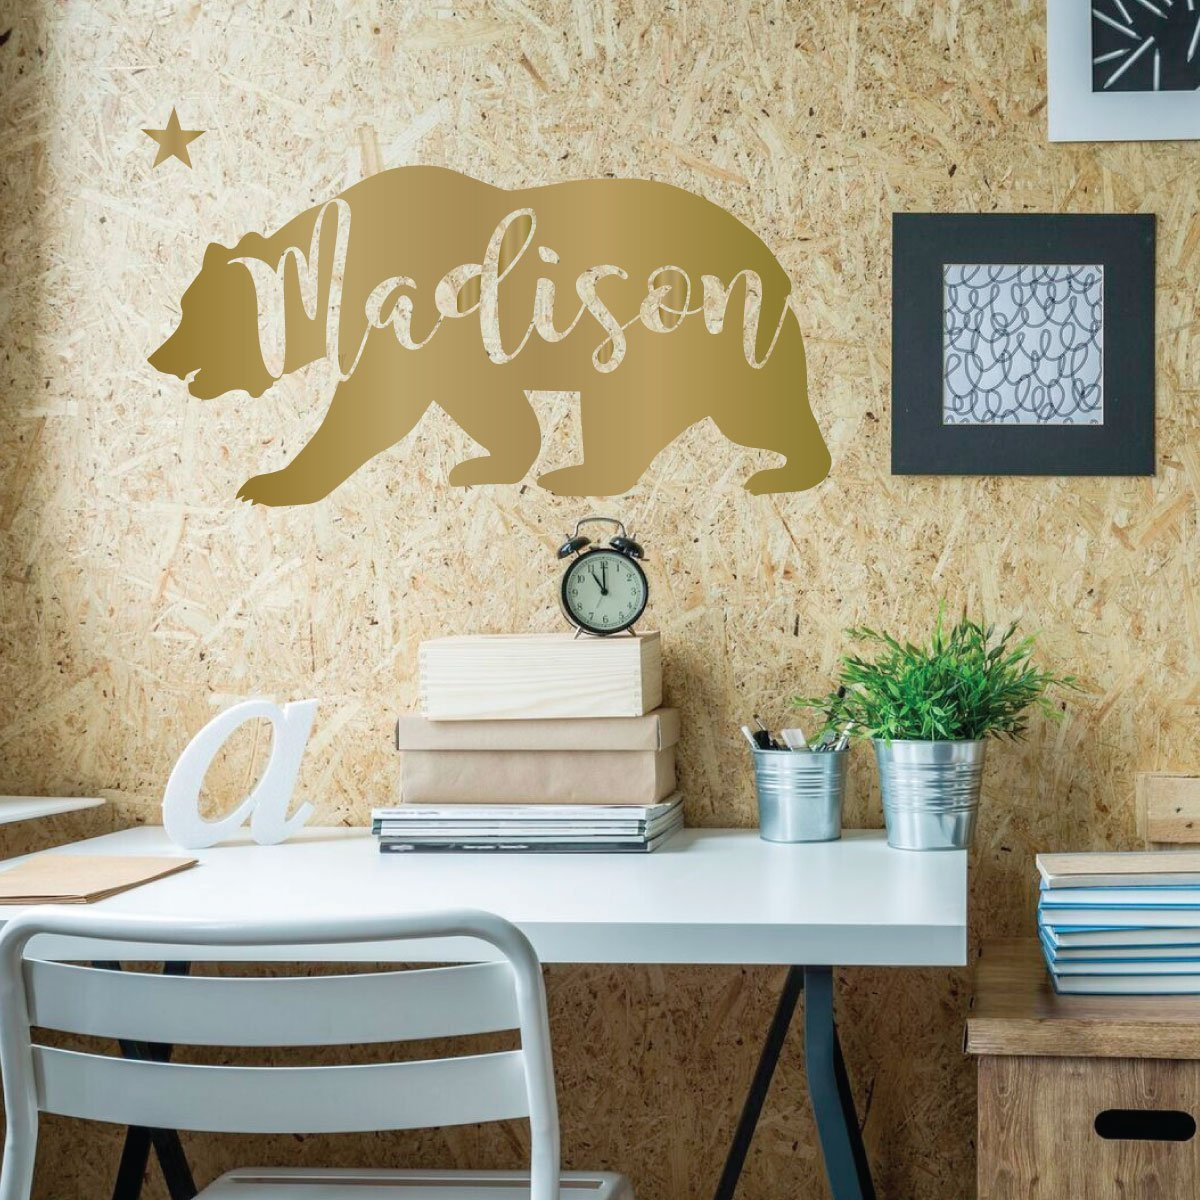 Wall Art Decals For Living Room: California Bear Vinyl Wall Art Decal For Home